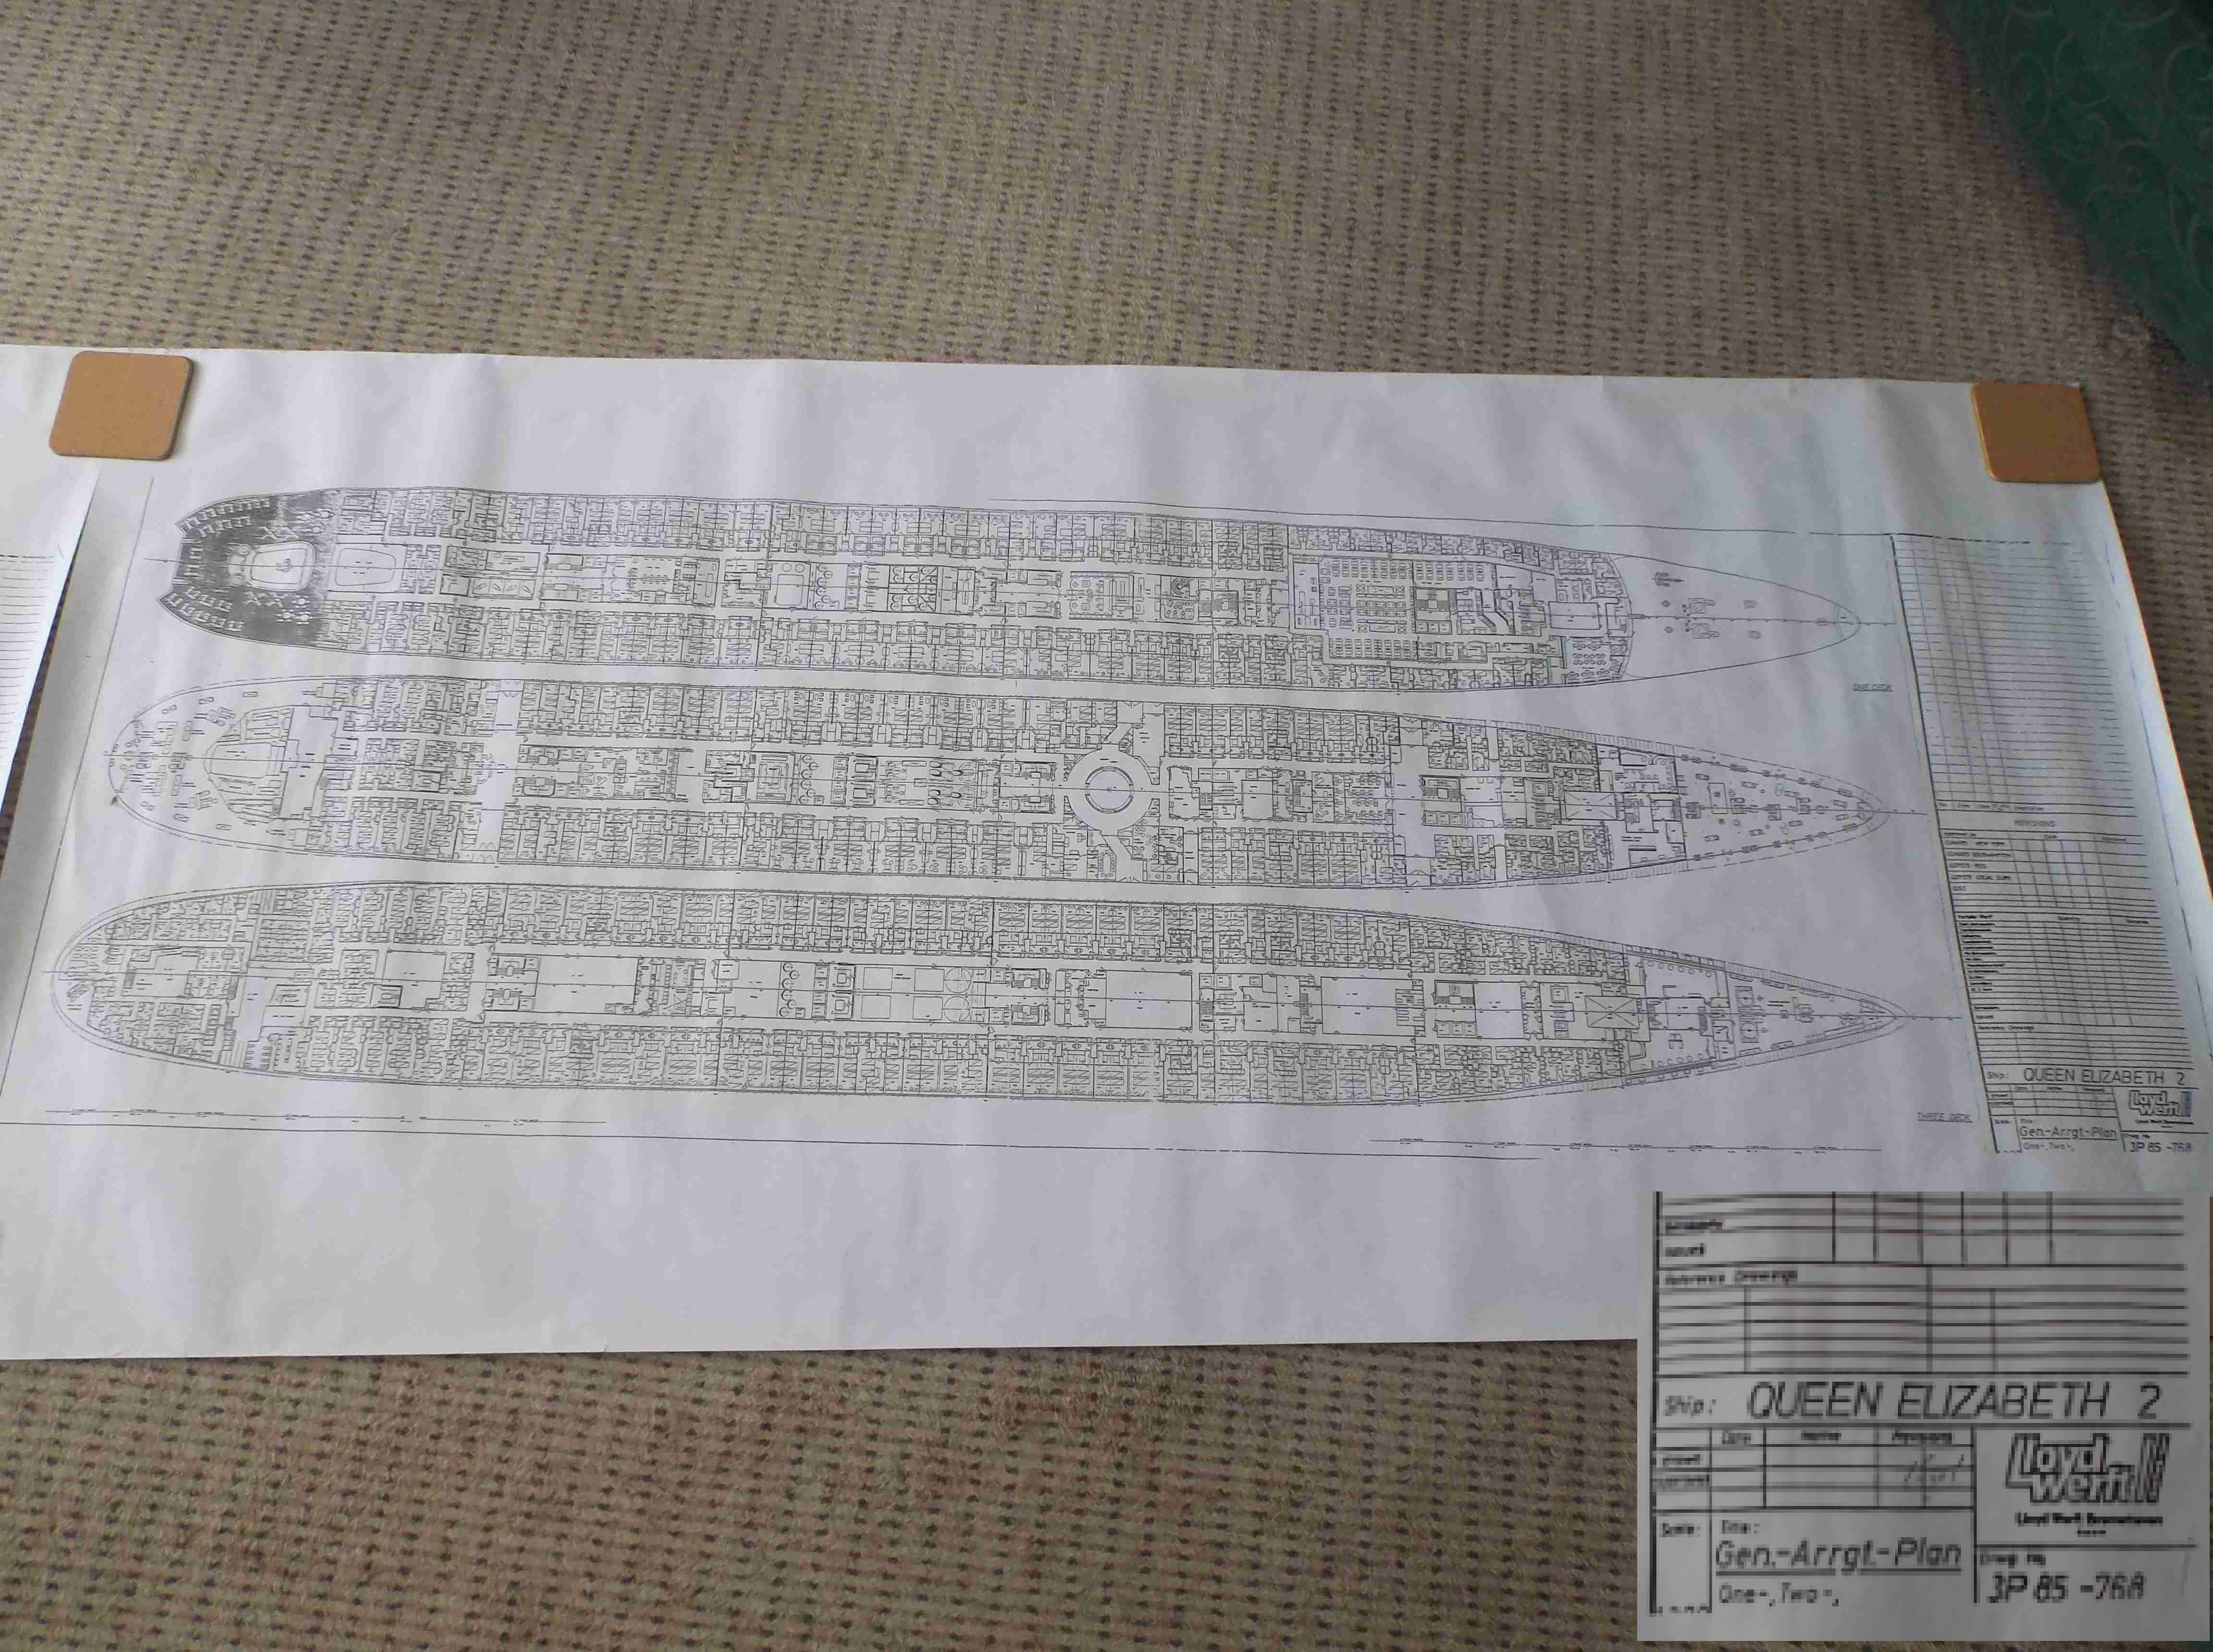 Maritime naval antiques catalogue travellers in time set of plans for the queen elizabeth 2 showing all decks baanklon Gallery